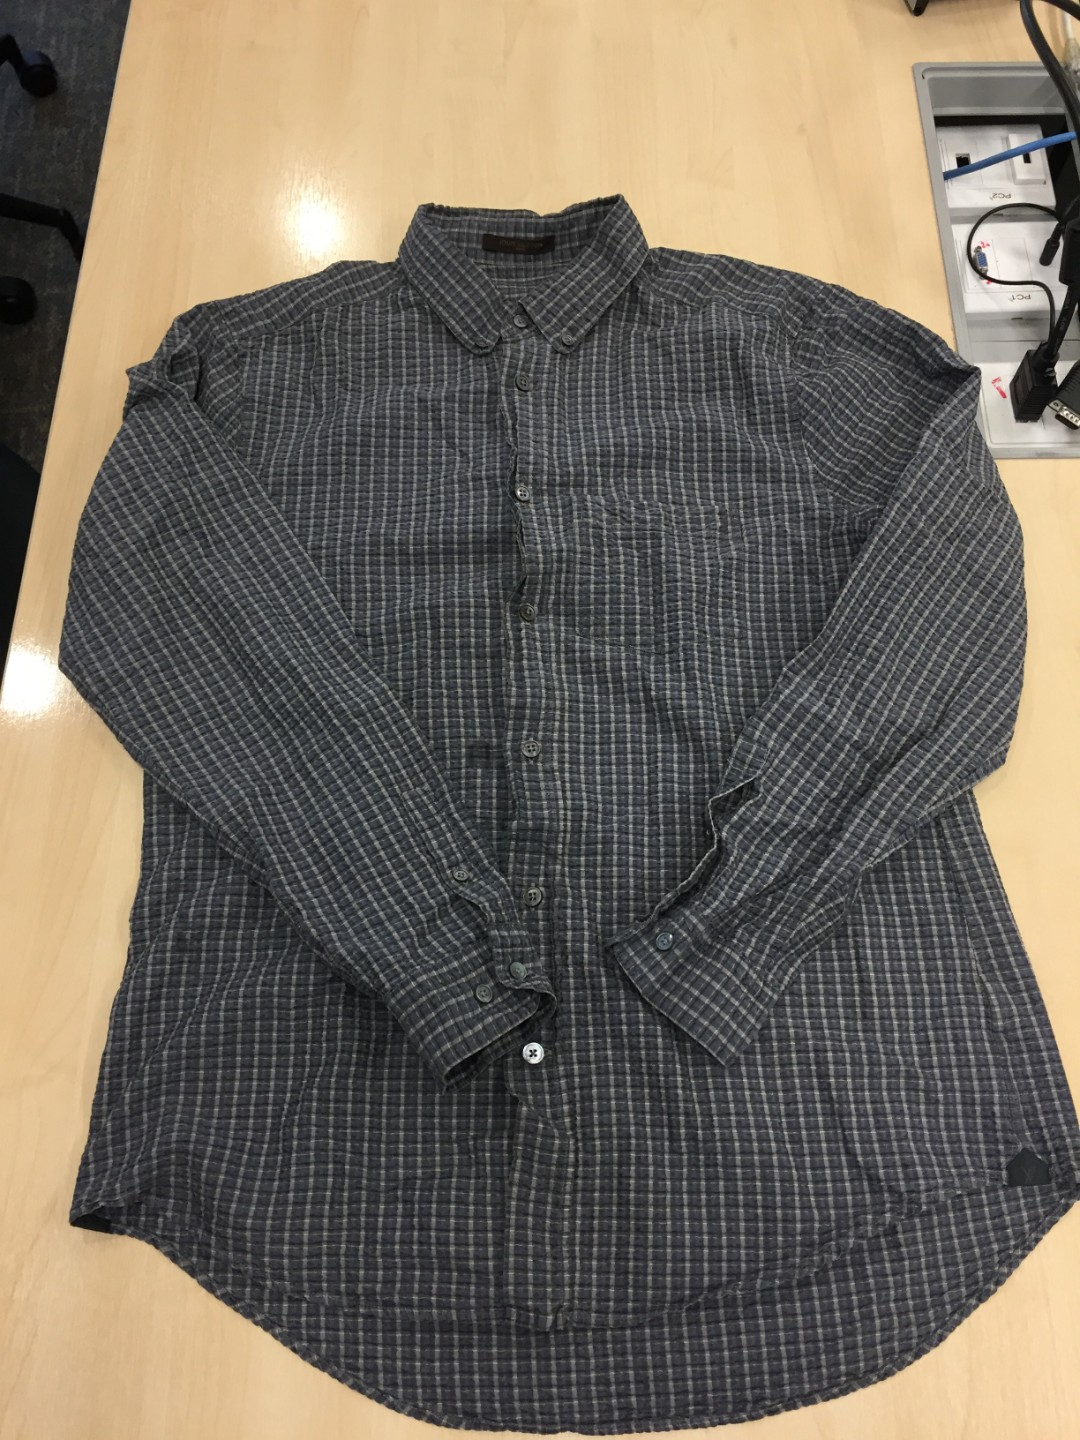 a7c5f7196194 LV Louis Vuitton Shirt, Men's Fashion, Clothes, Tops on Carousell